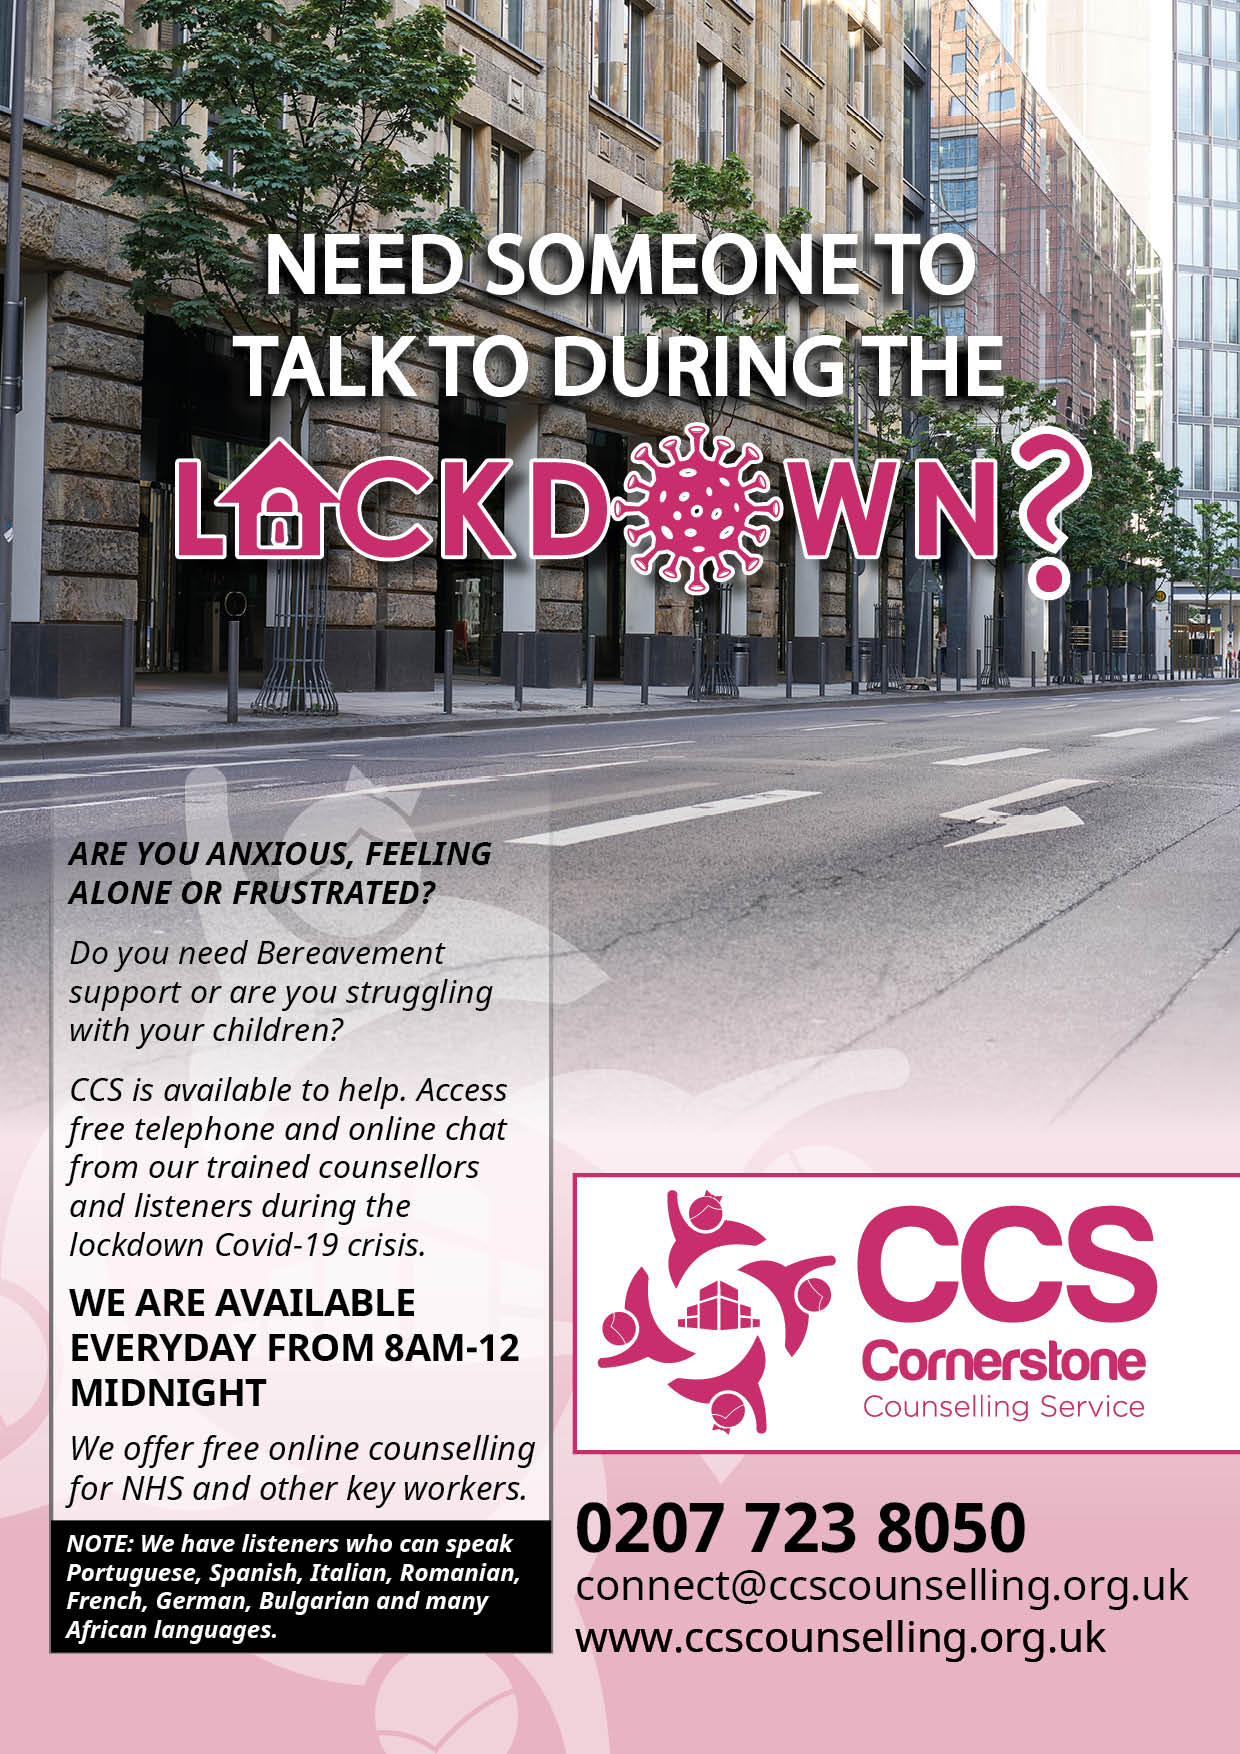 Cornerstone Counselling Service Lockdown Listening And Counselling Services